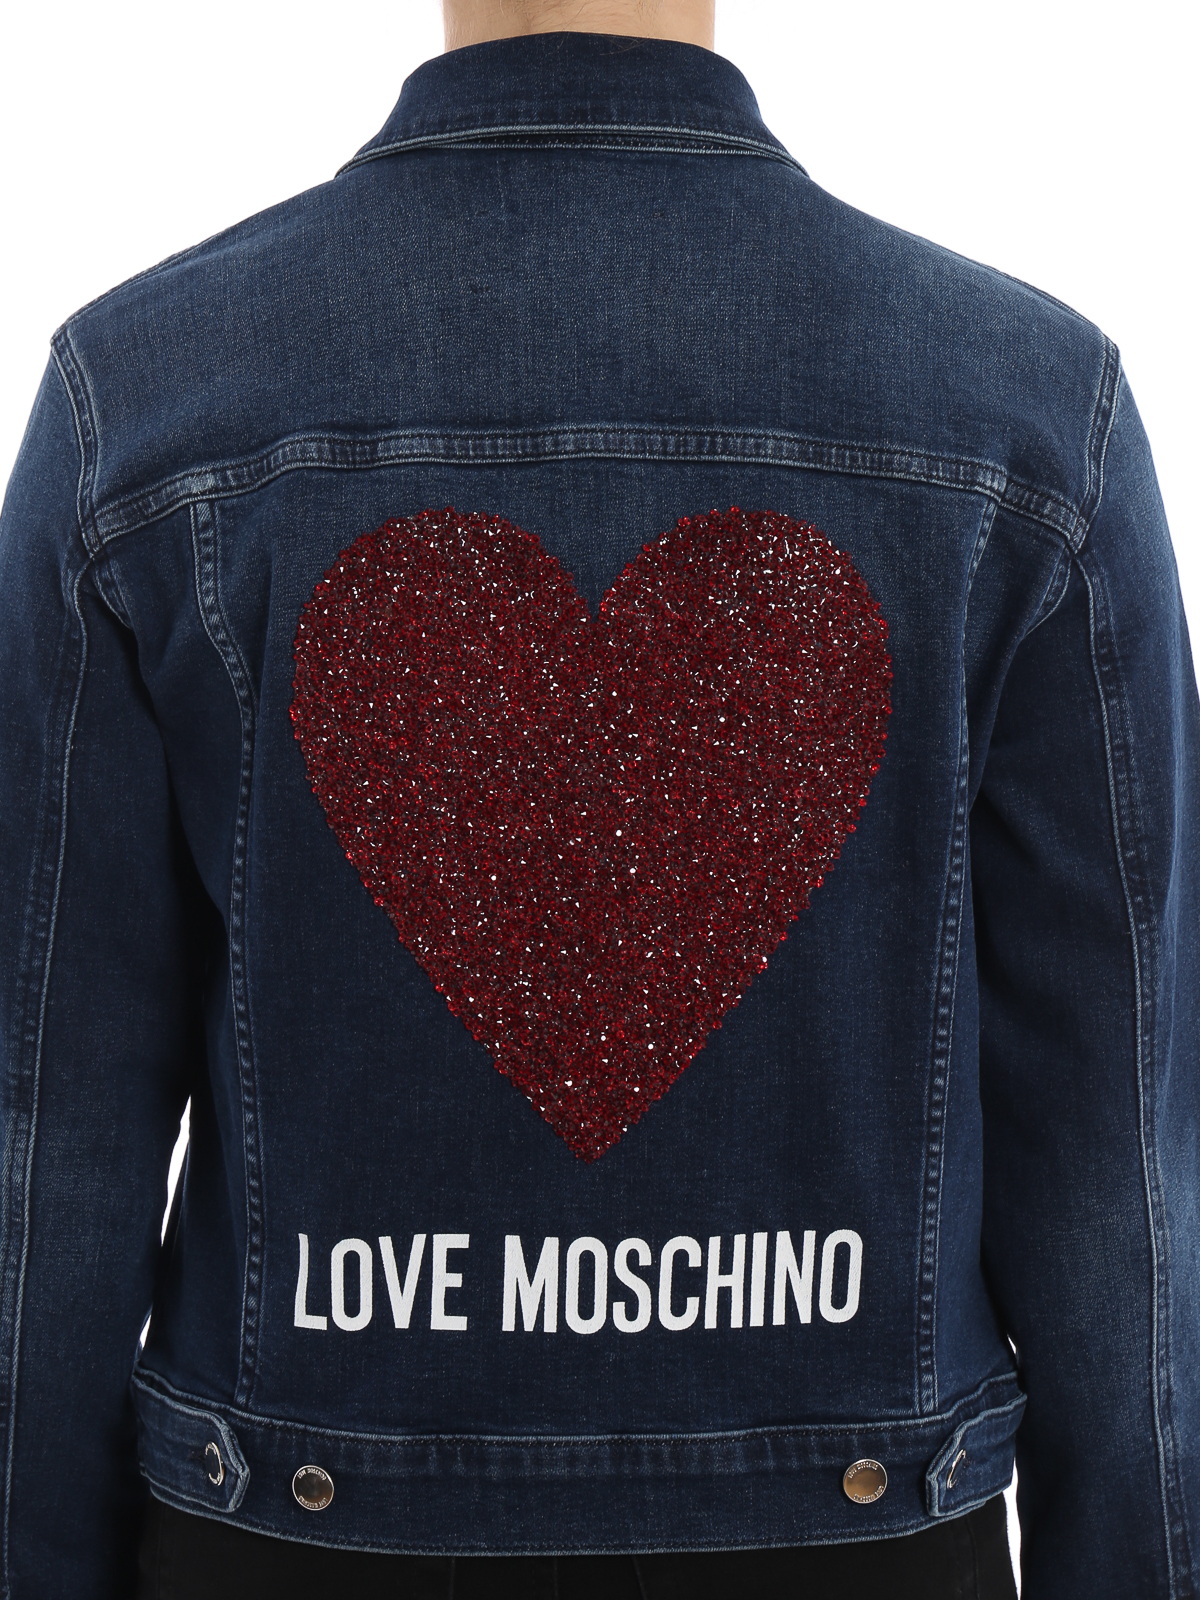 giacca jeans moschino